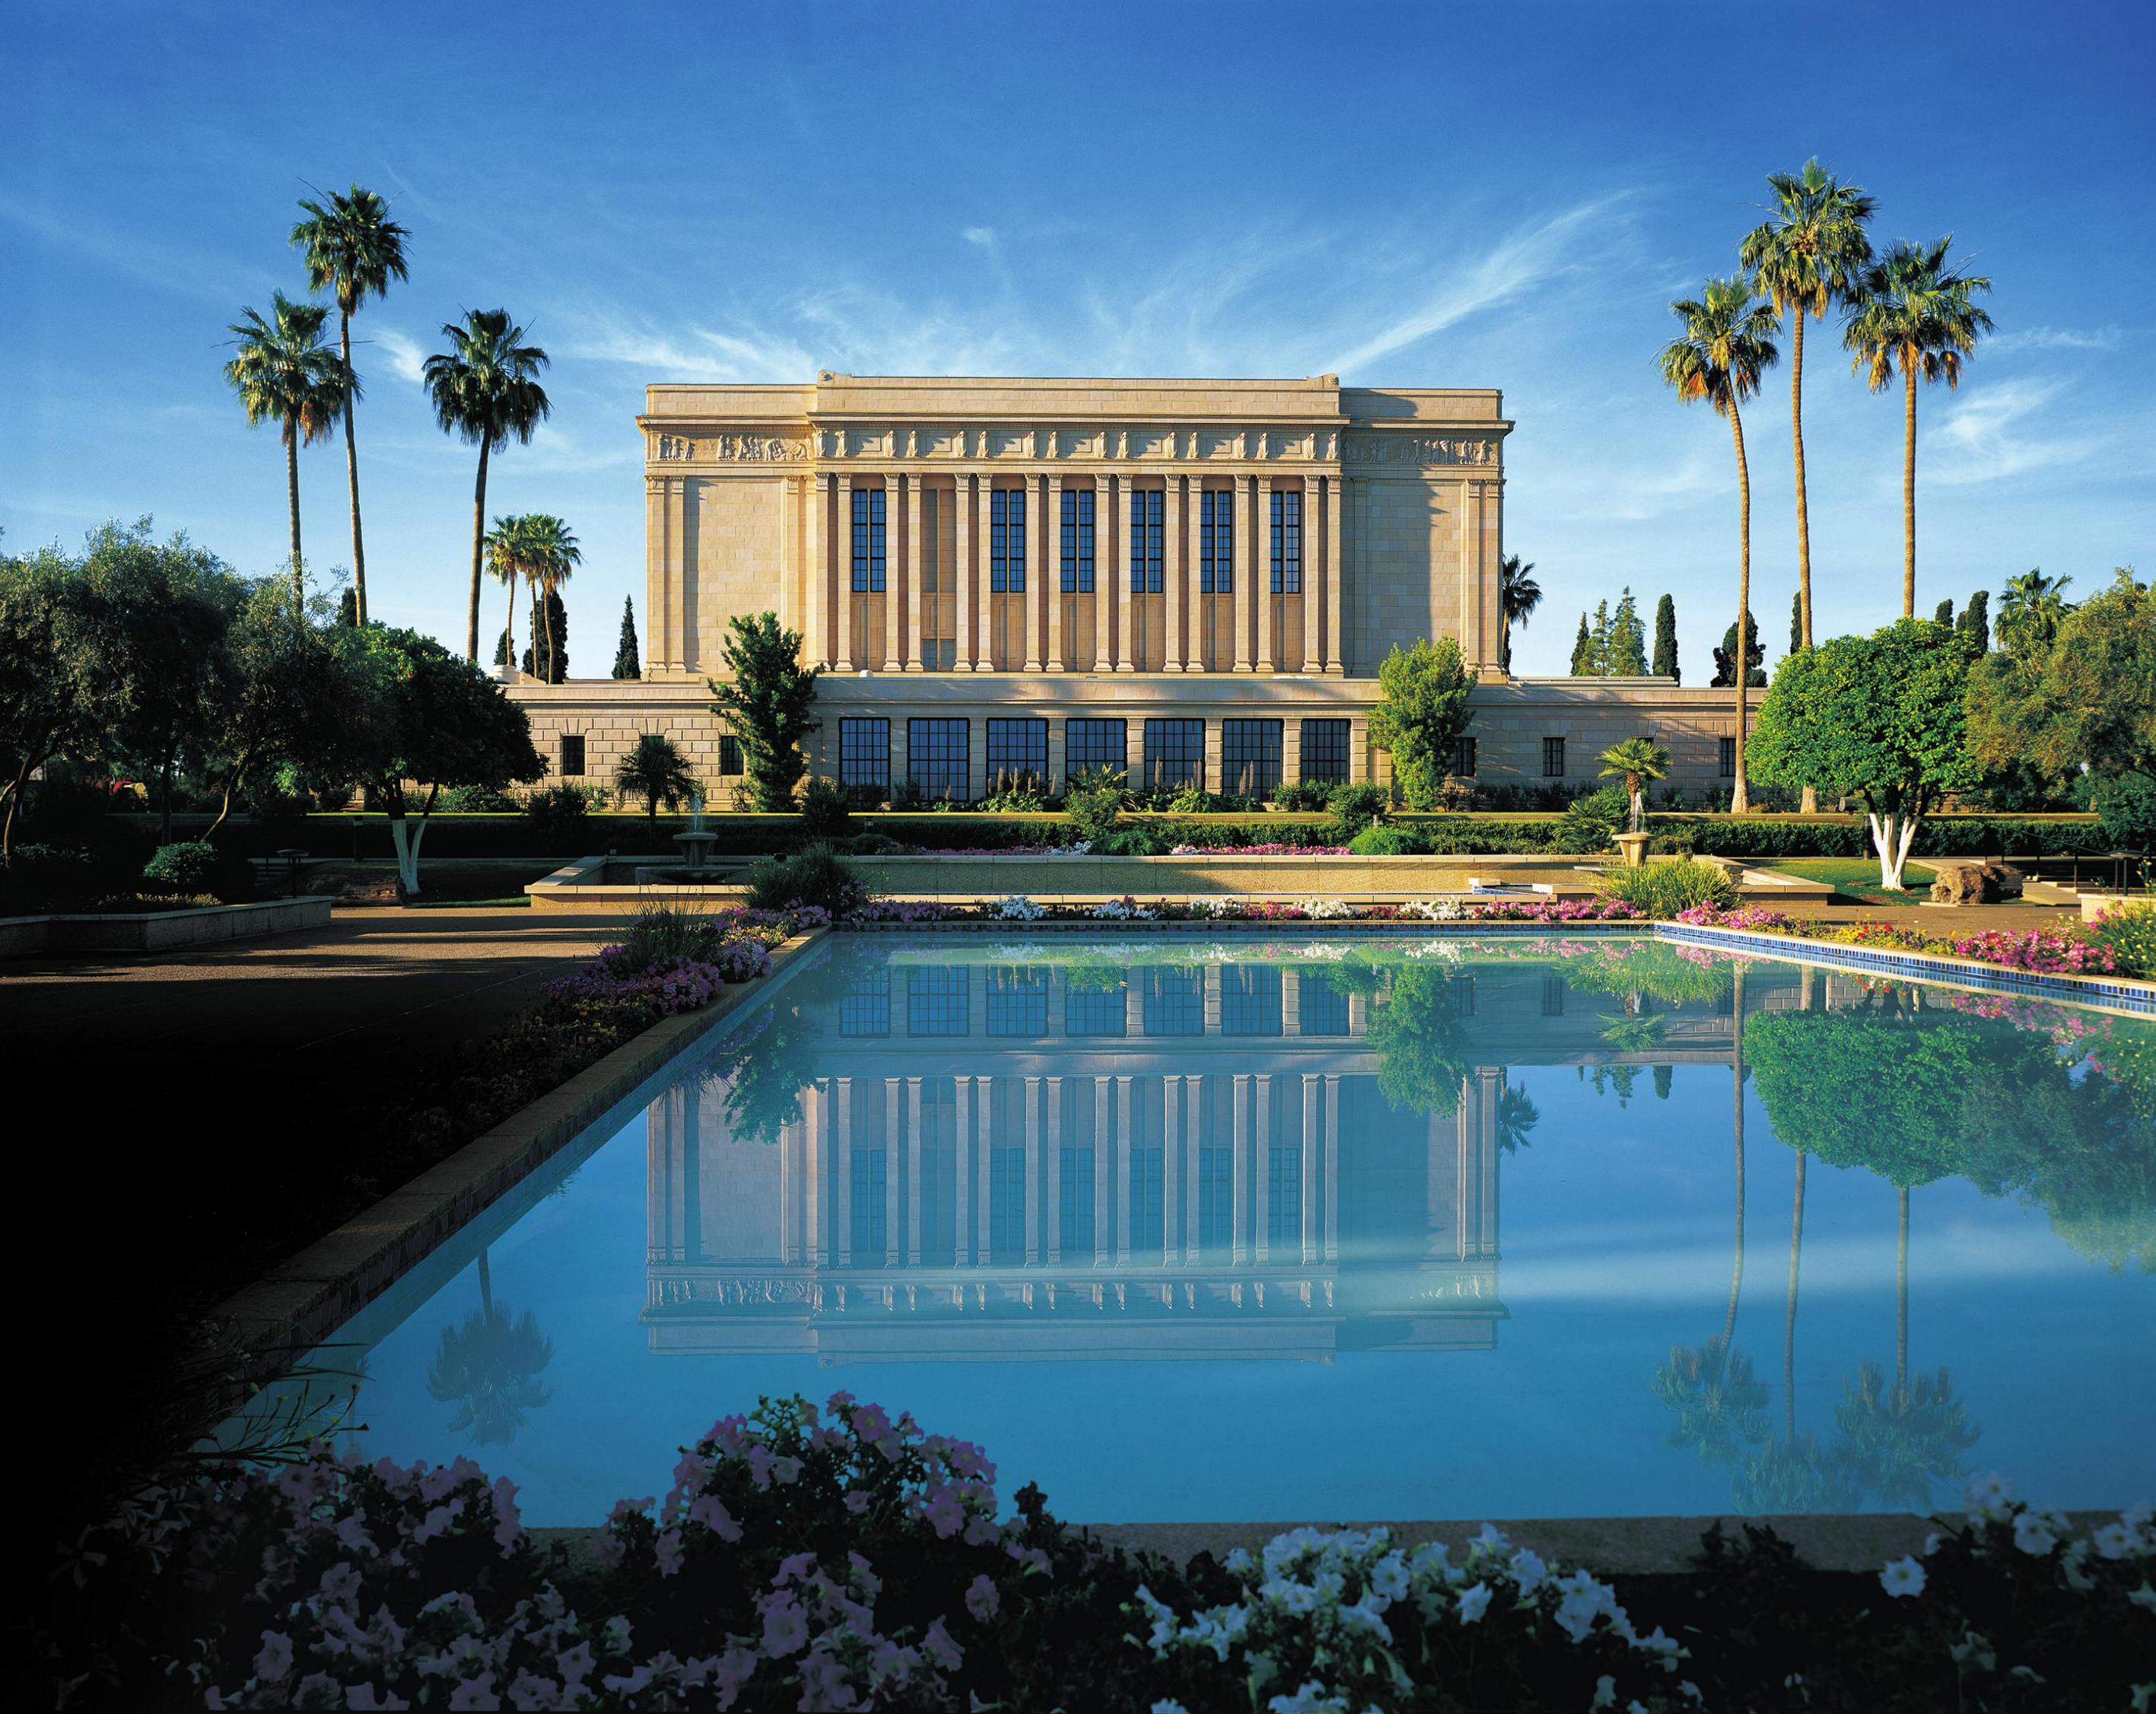 The Mesa Arizona Temple and its reflecting pool on a sunny day.